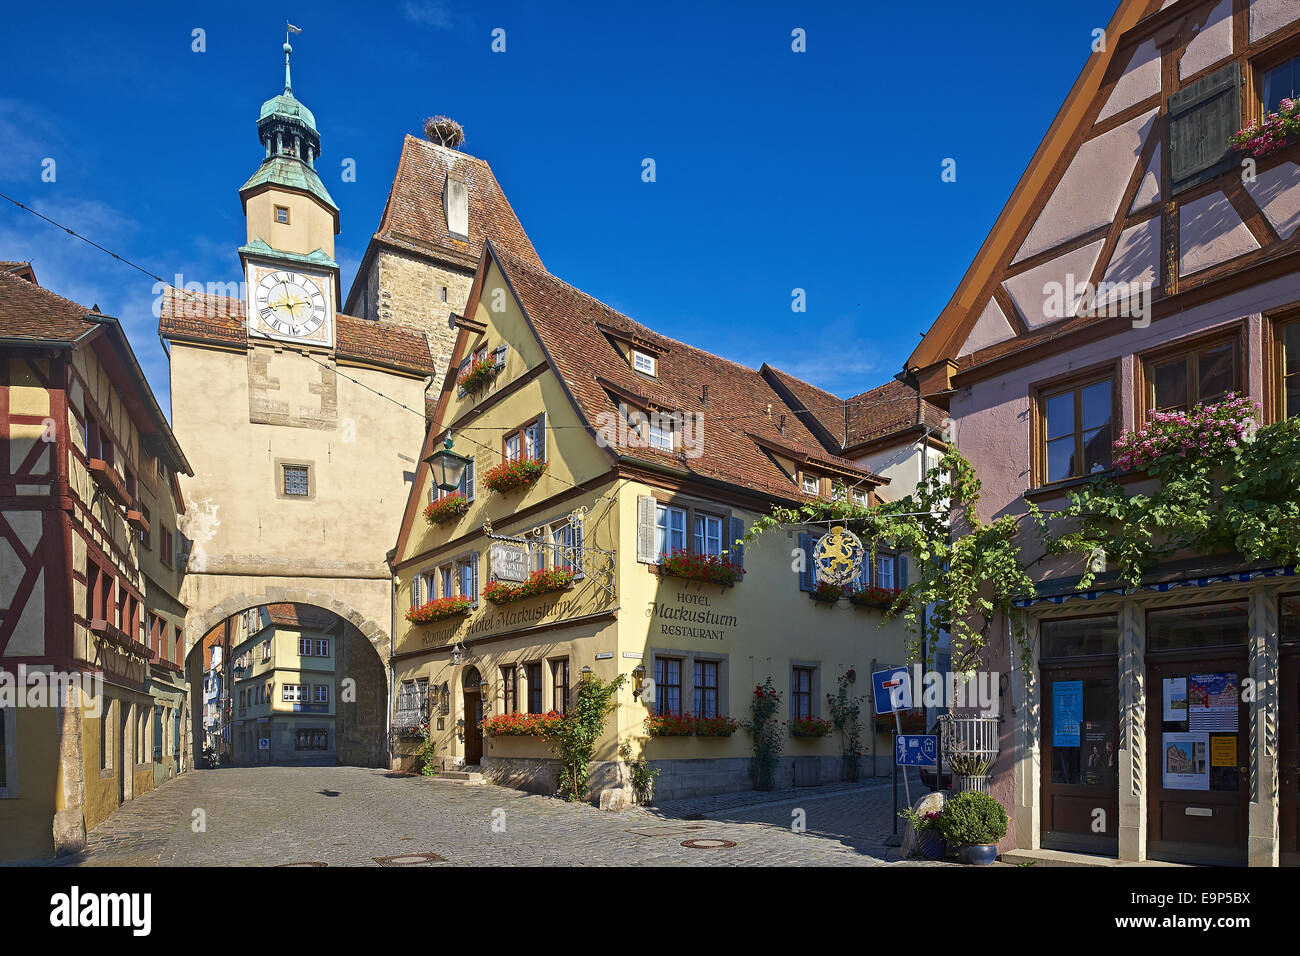 markus tower and roeder arch rothenburg ob der tauber bavaria stock photo royalty free image. Black Bedroom Furniture Sets. Home Design Ideas